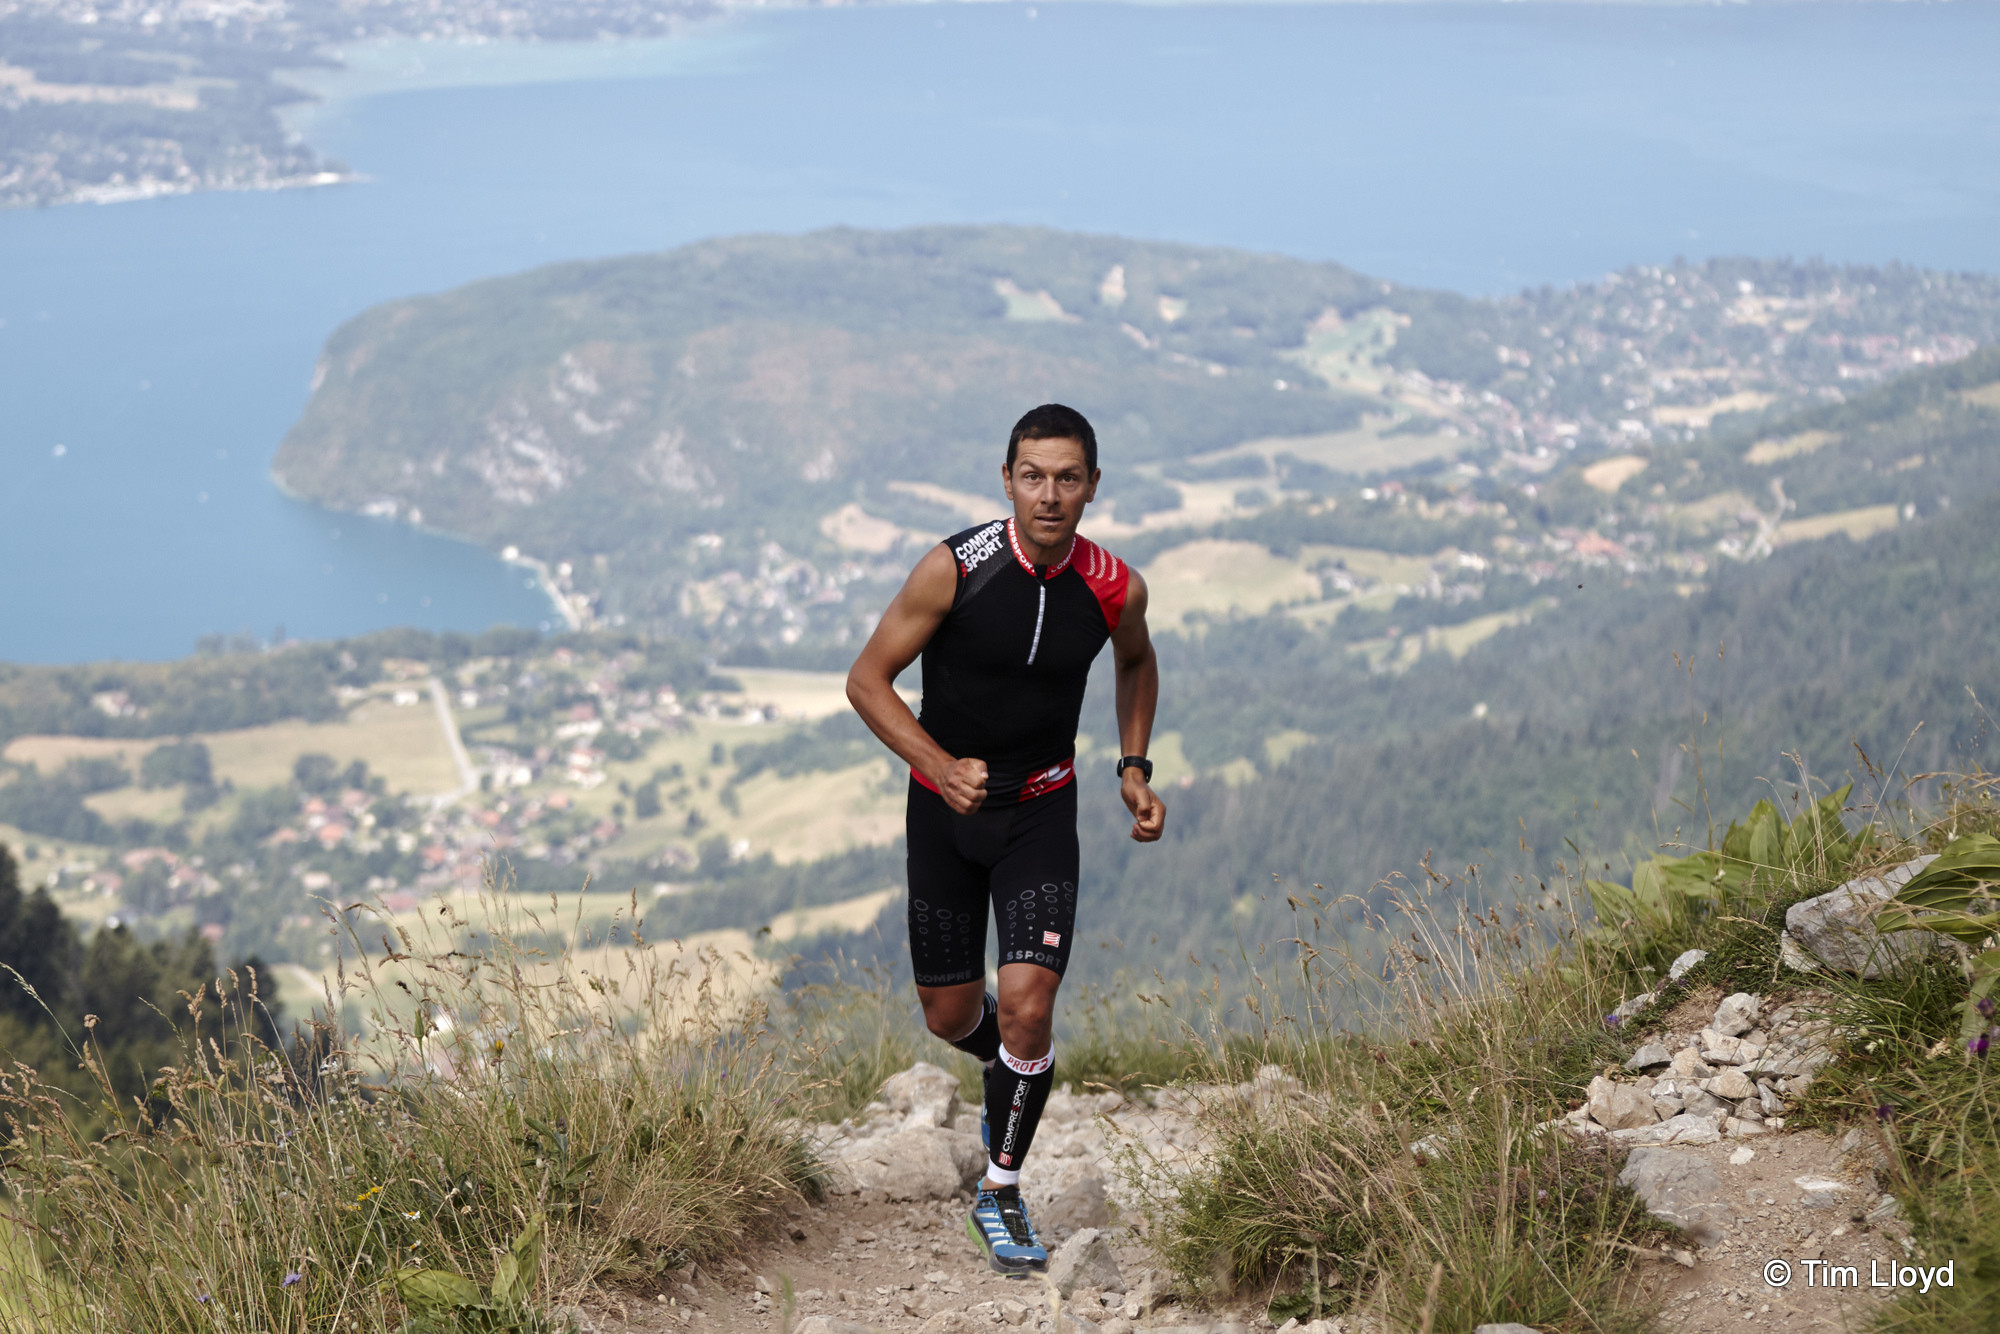 Julien Chorier Is hoping to run 273k (170 Miles) with 18,000m elevation gain in less than 60 hours